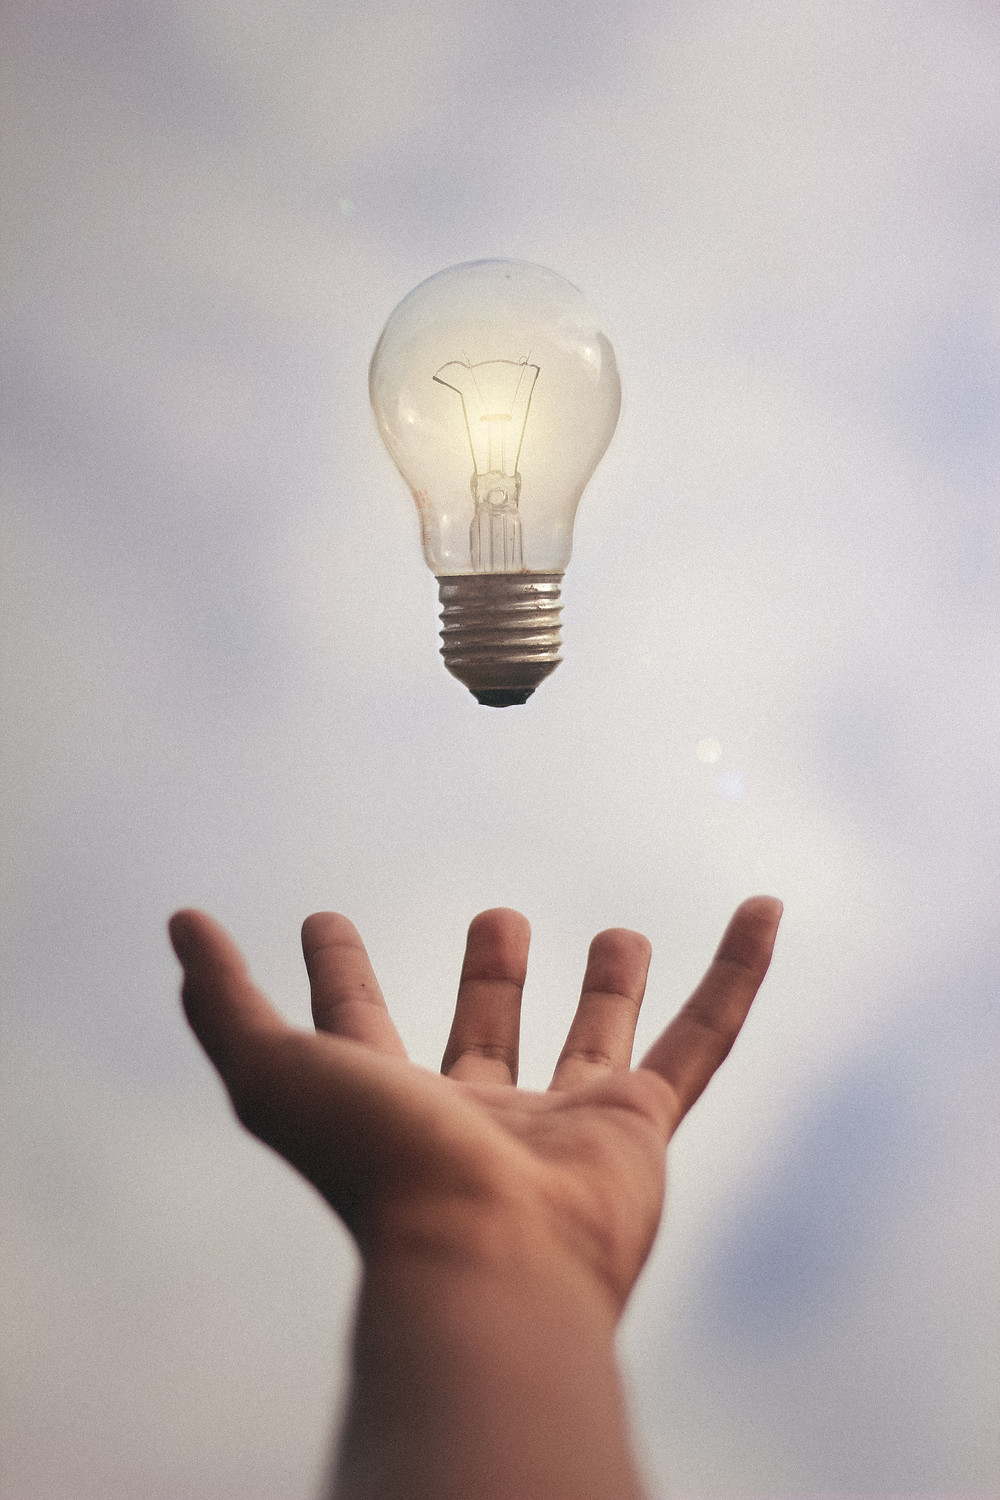 Light bulb hovering over an outstretched hand.